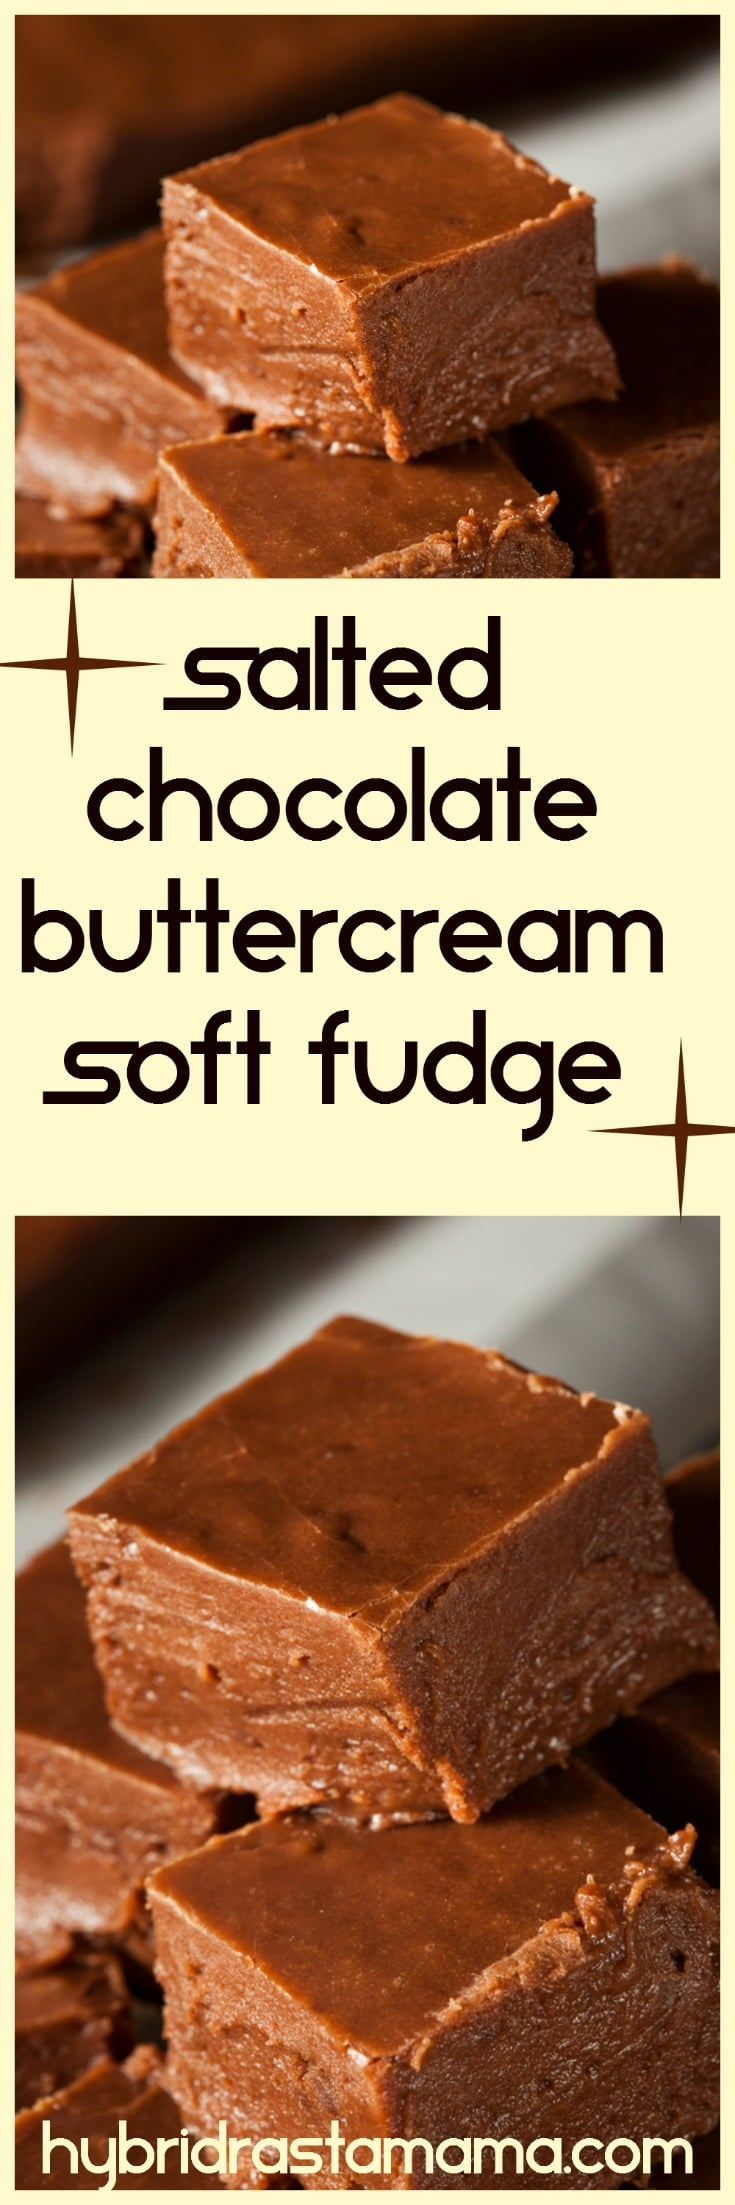 Do you love a rich, creamy, soft fudge? How about one that takes seconds to make? Try your hand at this versatile gluten free salted chocolate buttercream soft fudge. It is delicious and very nourishing! Created by HybridRastaMama.com.